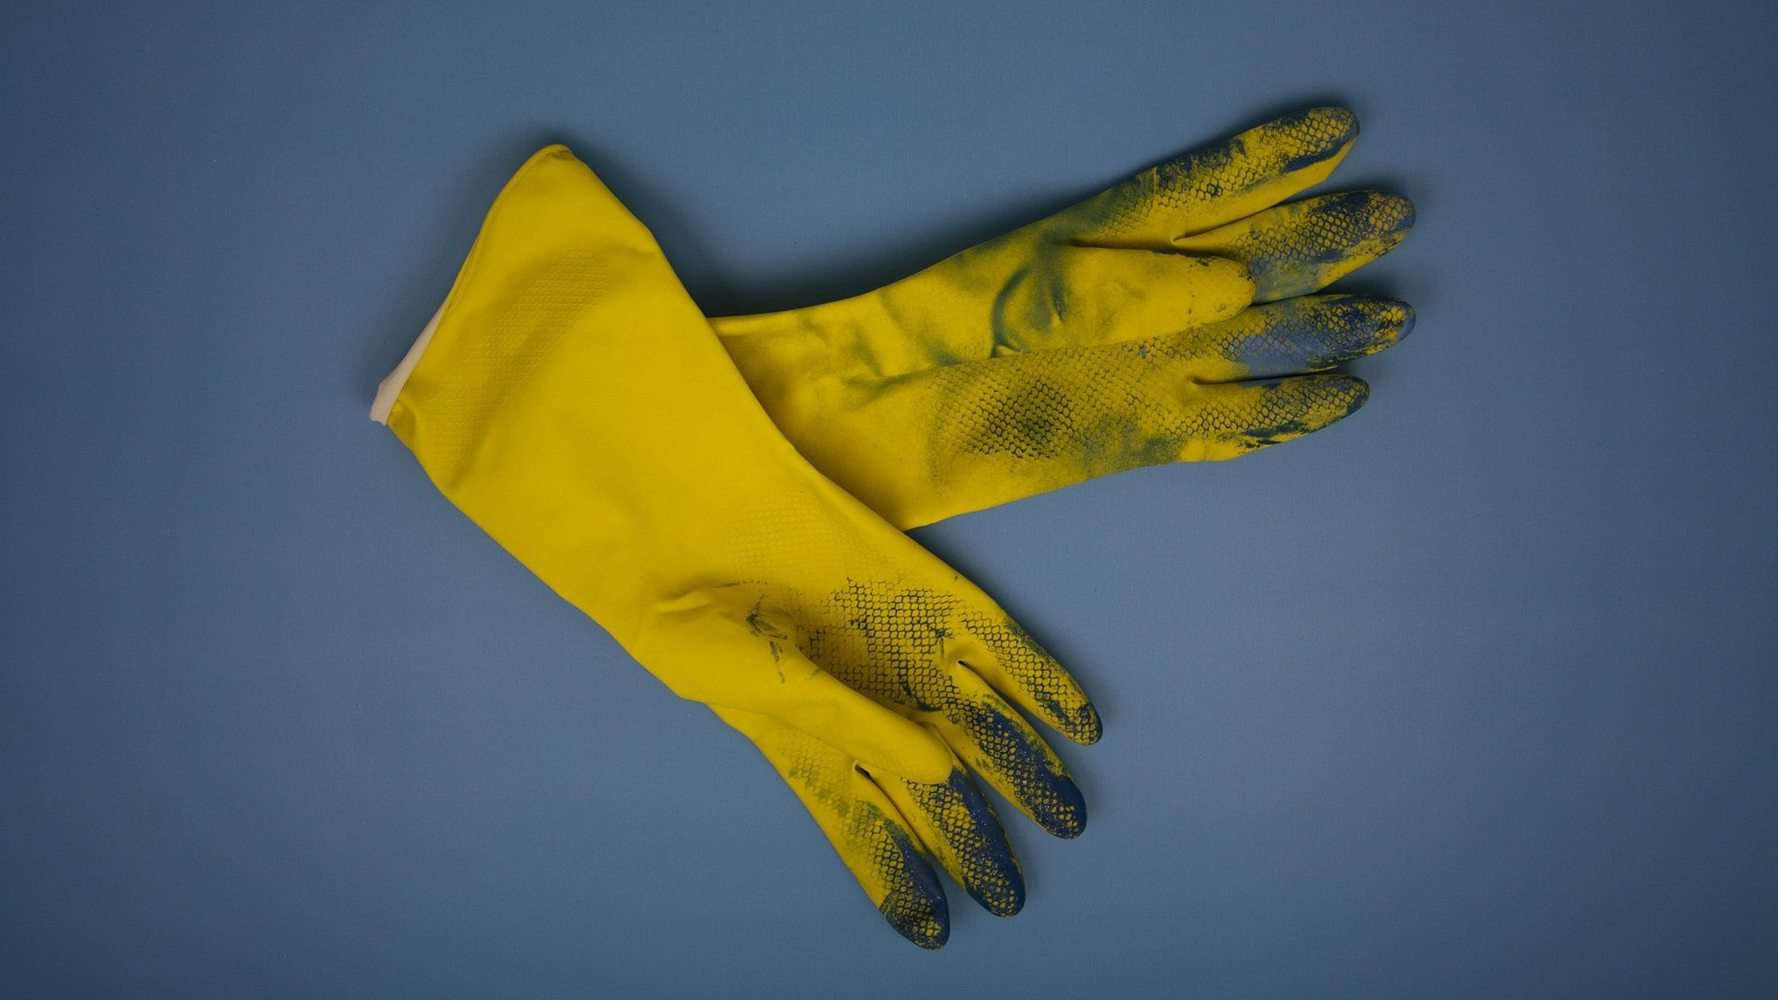 Dirty rubber gloves.